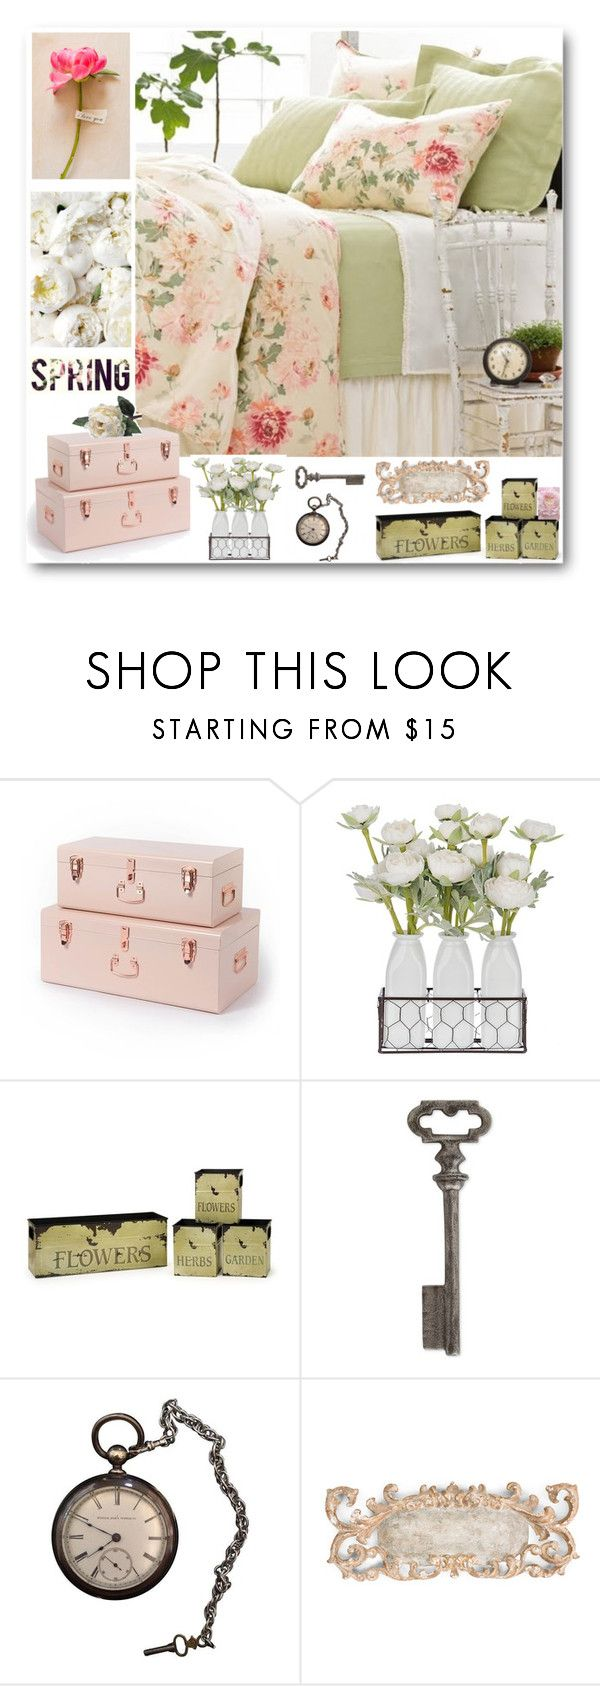 """""""Spring Peony"""" by magicalslipper ❤ liked on Polyvore featuring interior, interiors, interior design, home, home decor, interior decorating, Thirstystone, Aidan Gray and Abigail Ahern"""